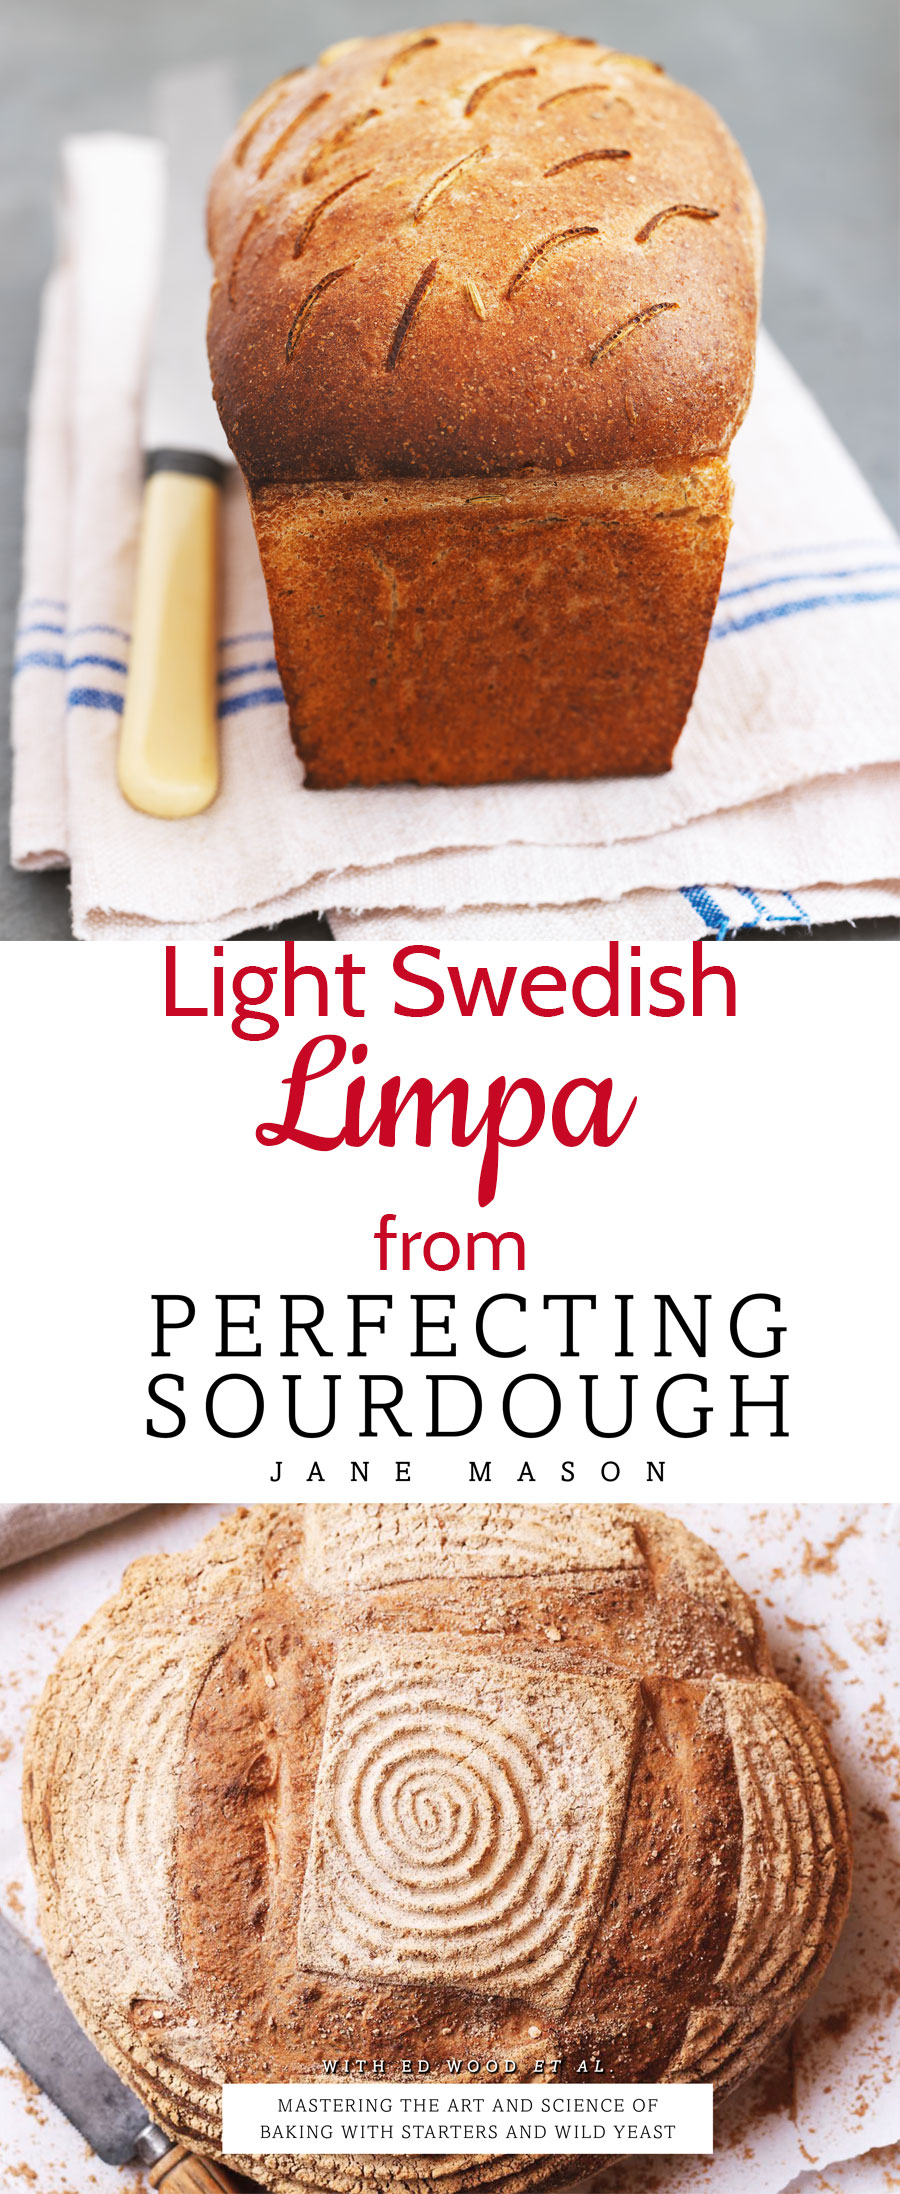 Light Swedish rye Limpa sourdough bread is a delicious alternative to wheat flour bread. Recipe from Perfecting Sourdough by Jane Mason